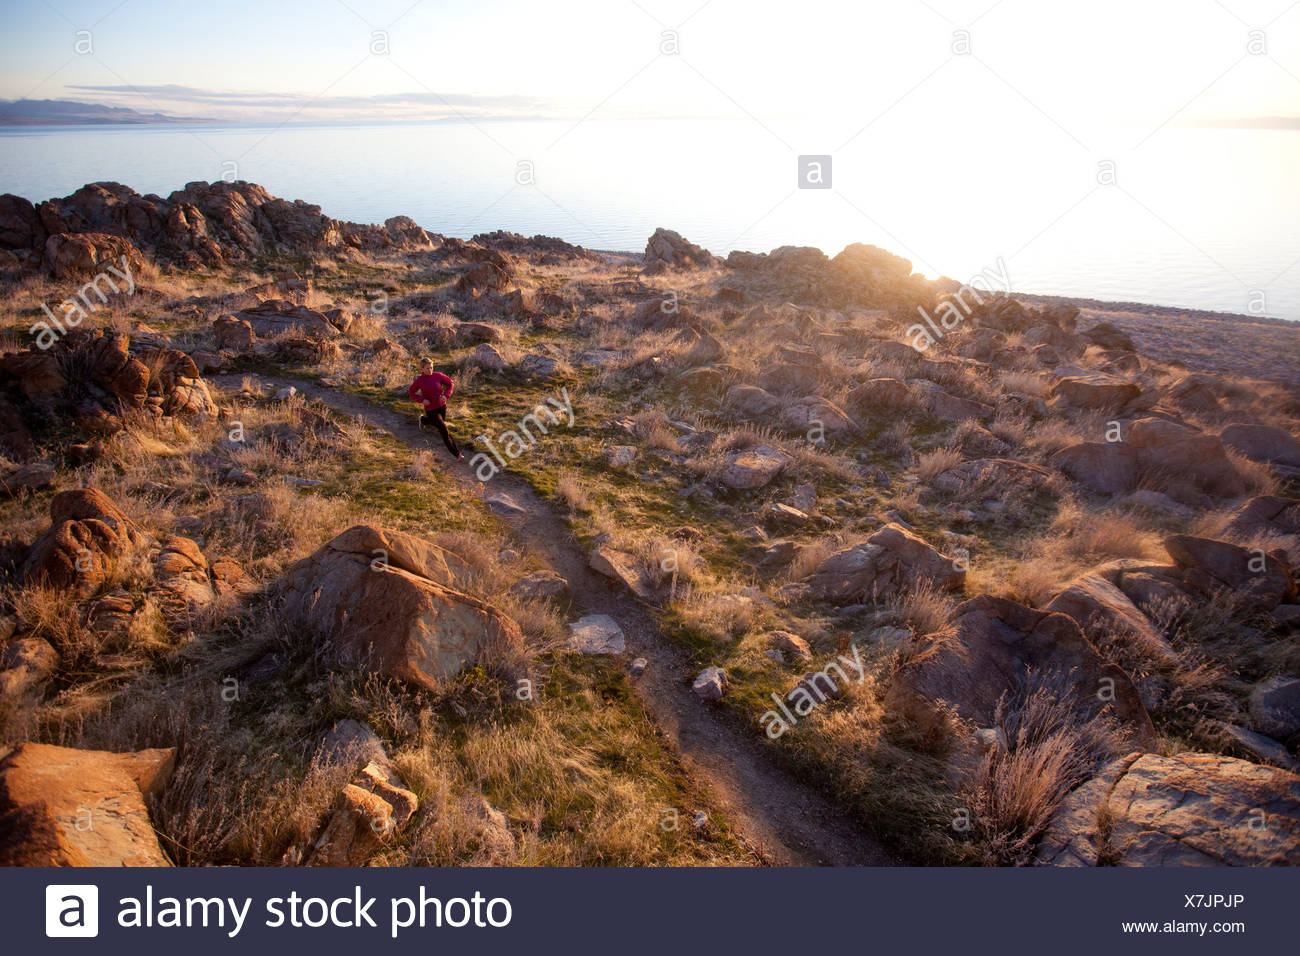 A woman out for an afternoon trail run on Antelope Island, Utah. - Stock Image